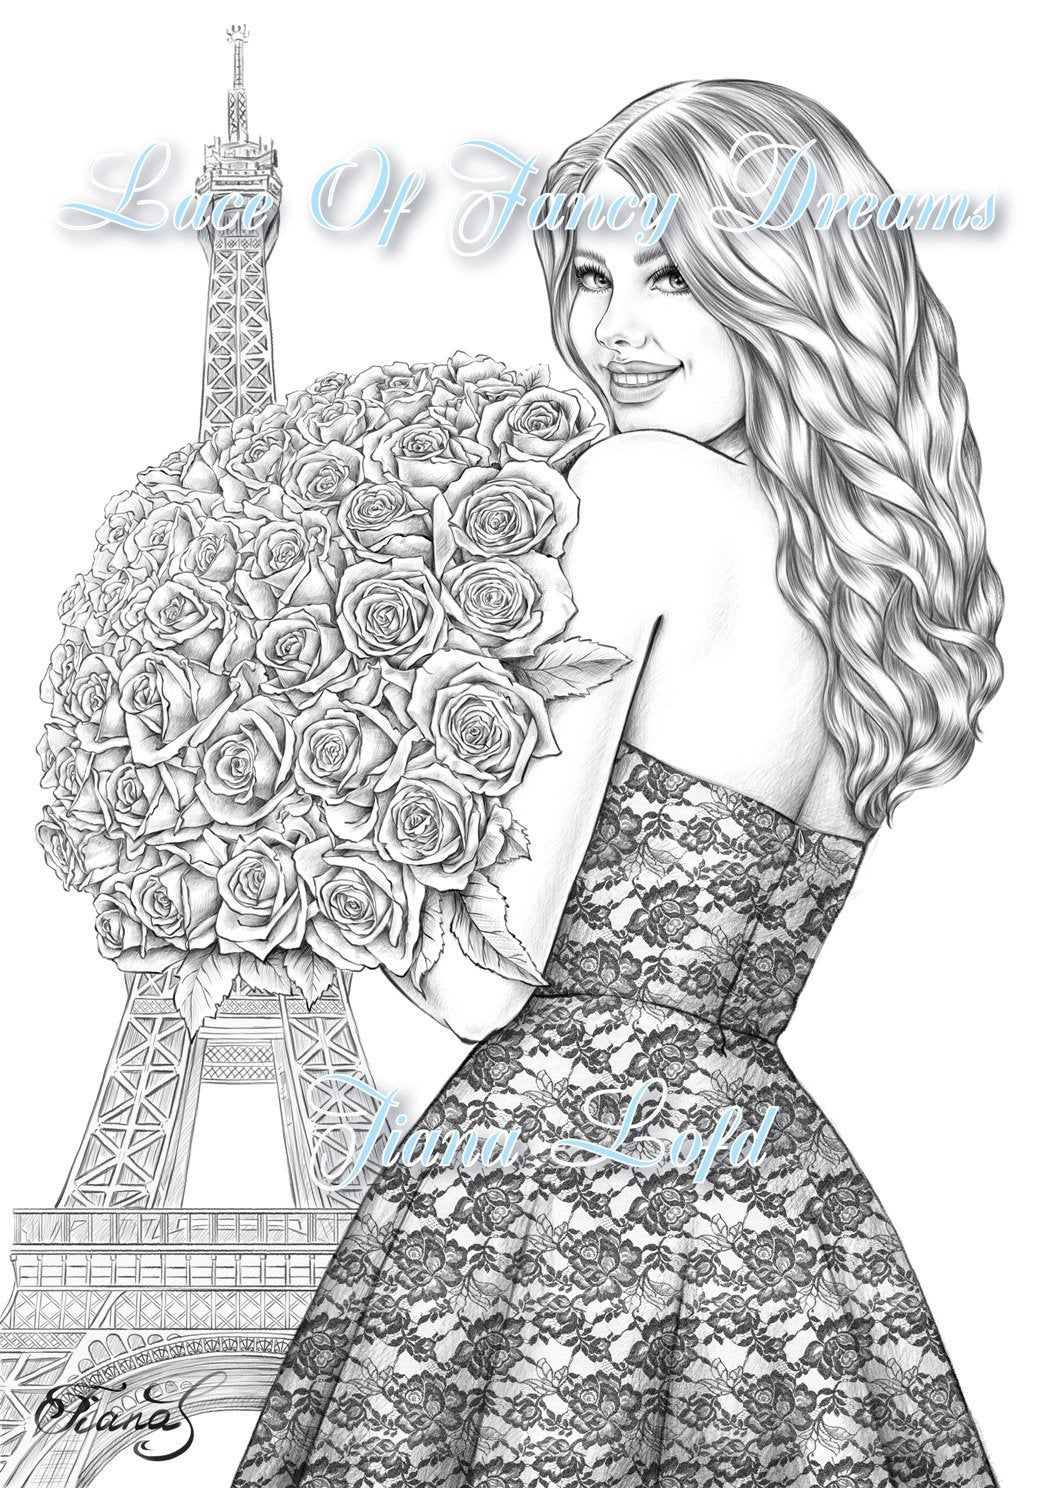 Pdf Coloring Page Woman Love Flowers Roses Bouquet Paris Etsy In 2020 Coloring Pages Princess Coloring Disney Drawings